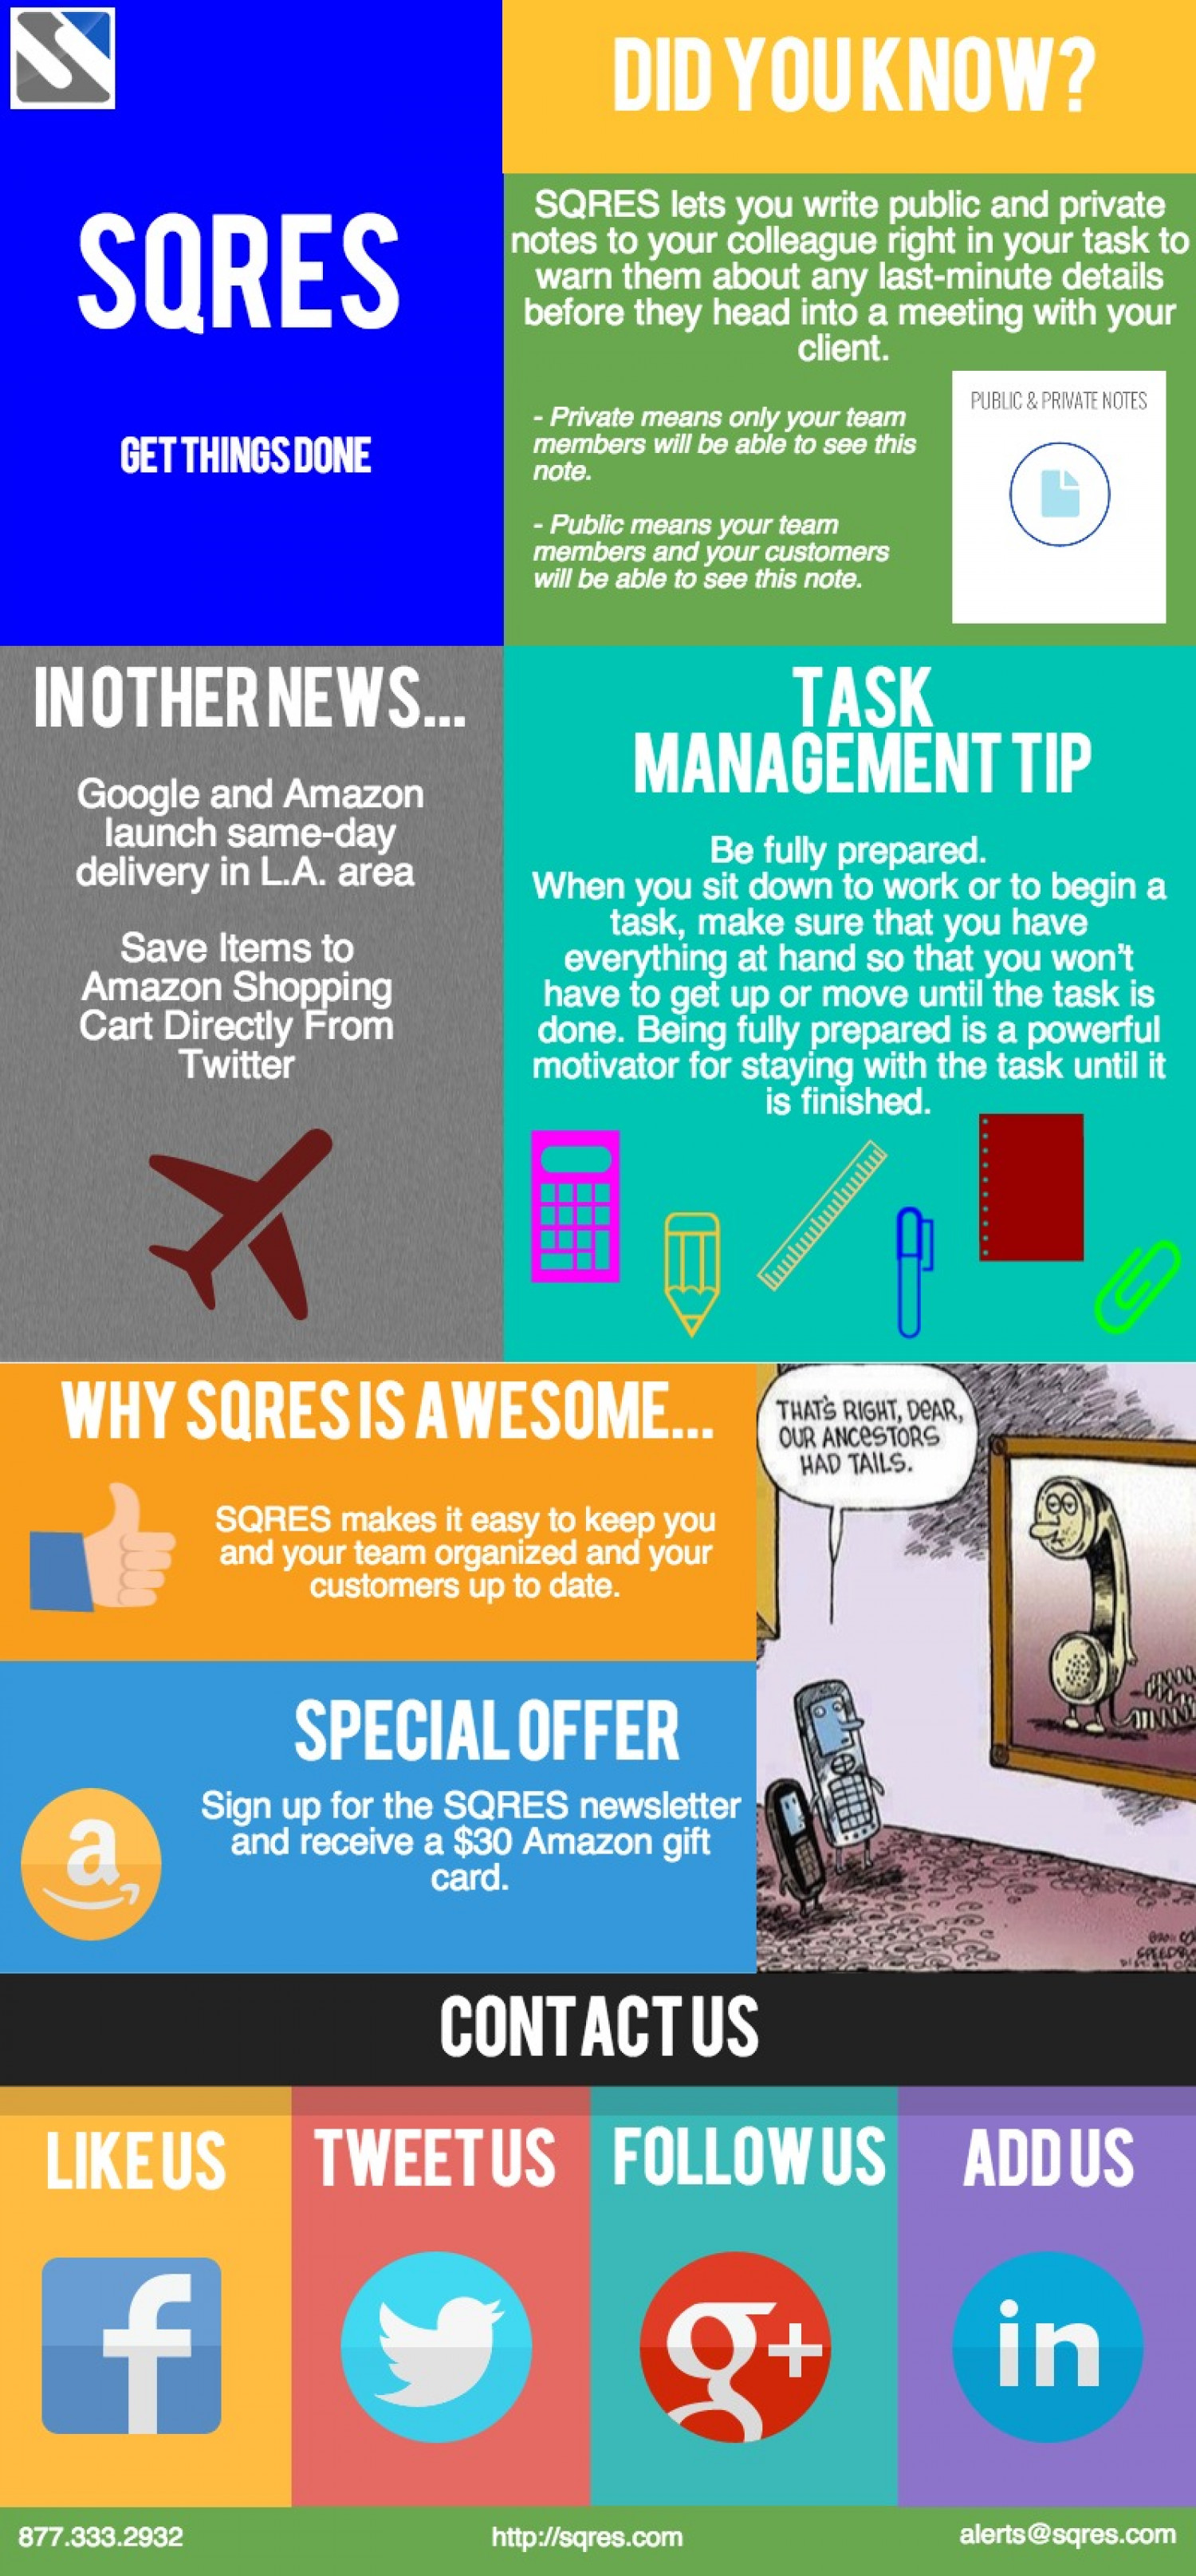 Write Notes to Your Team - SQRES Task Management Web App Infographic